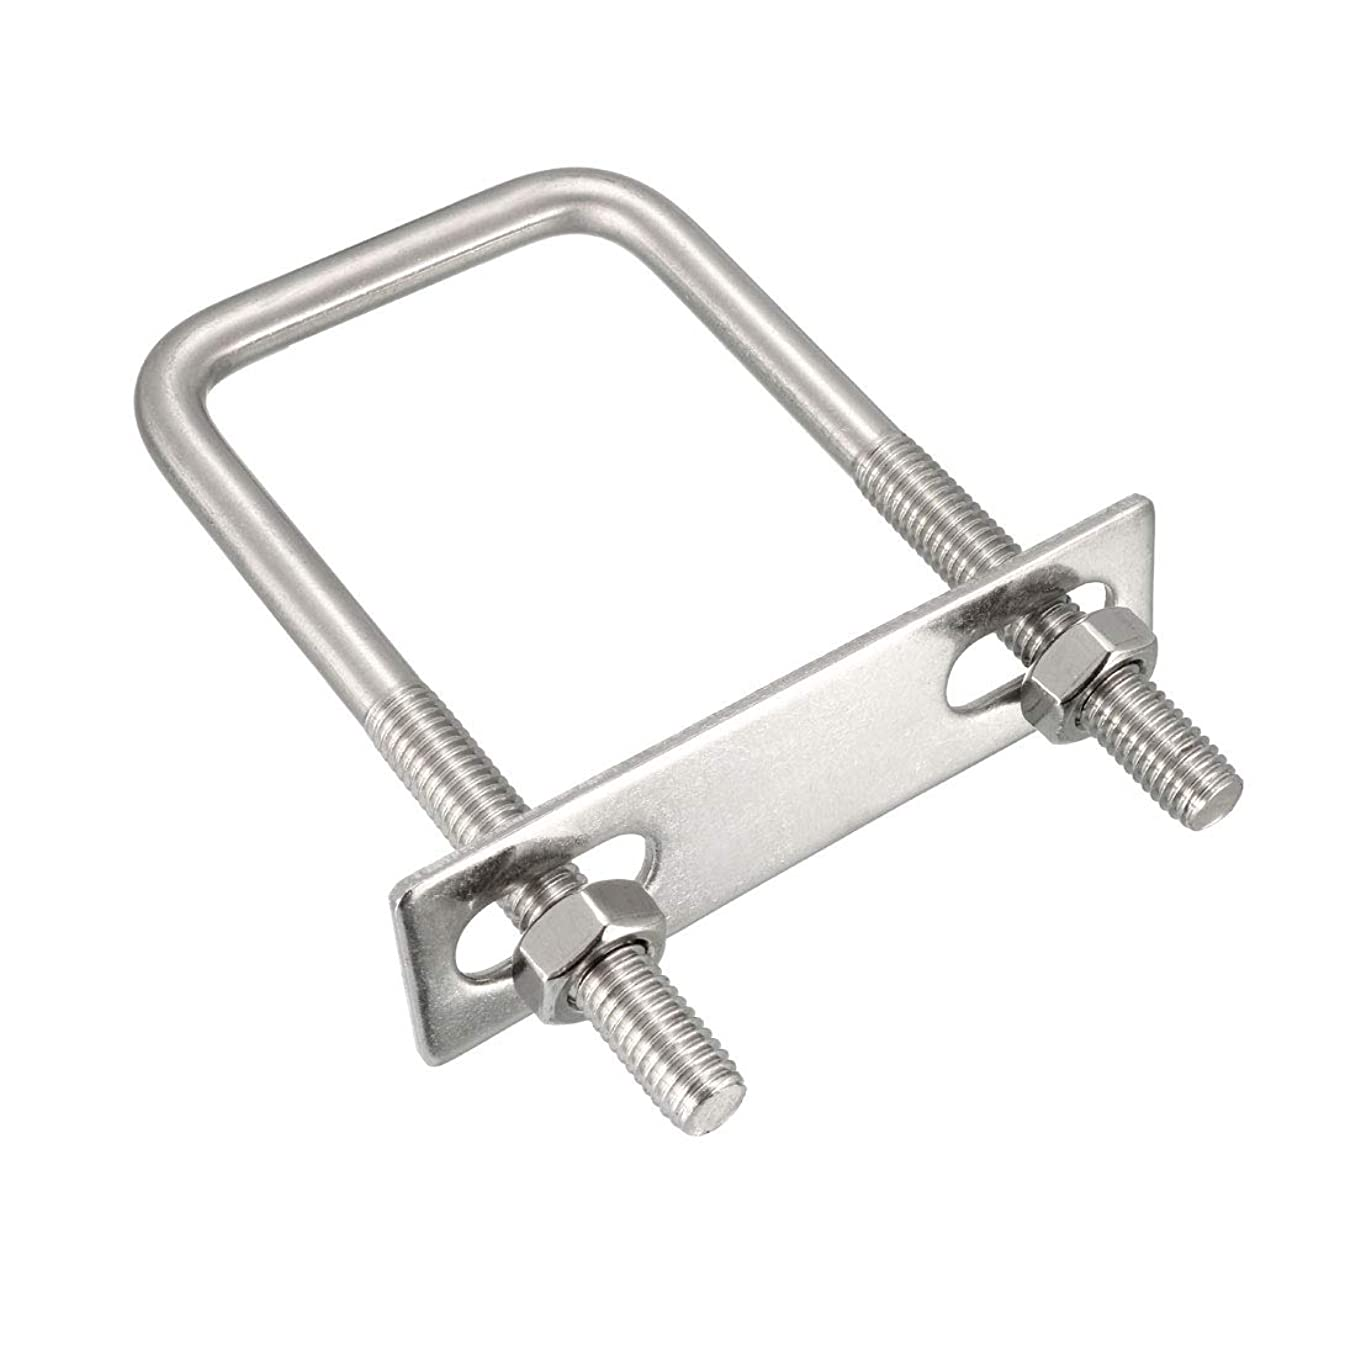 uxcell Square U-Bolts M8 50mm Inner Width 304 Stainless Steel with Nuts Frame Straps